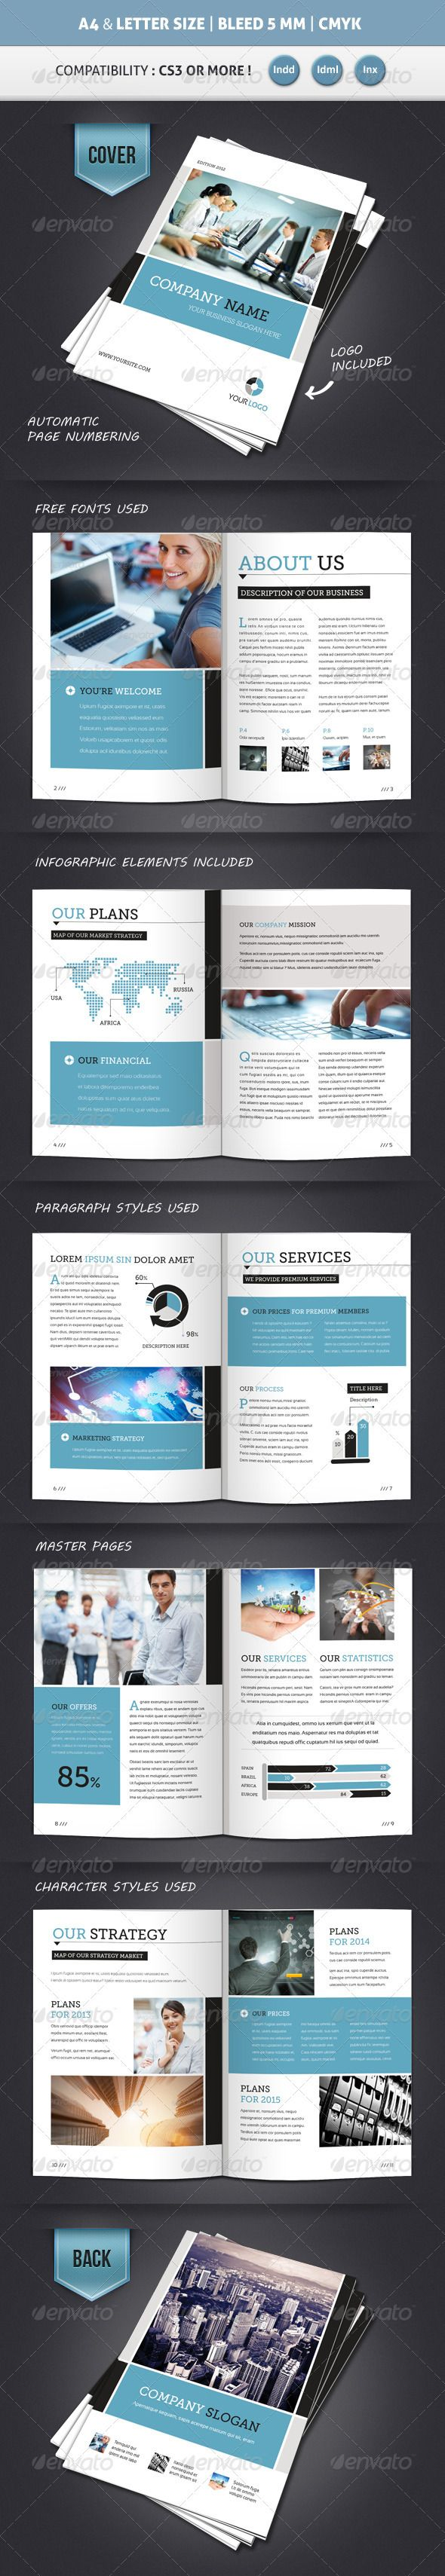 layout design templates free